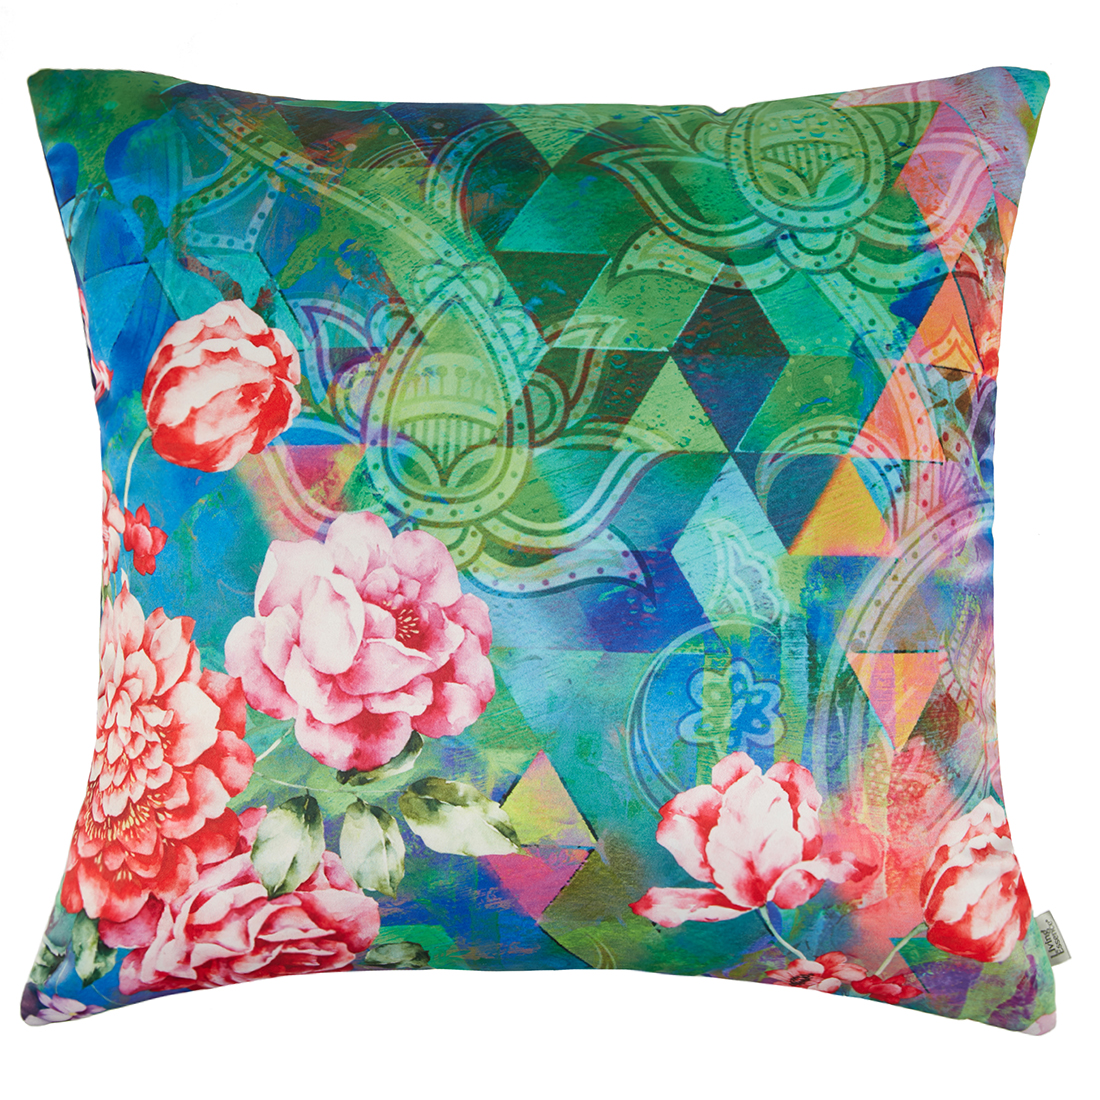 Digital Cushion Cover Lotus Stripe Cushion Covers in Poly Satin Colour by Living Essence